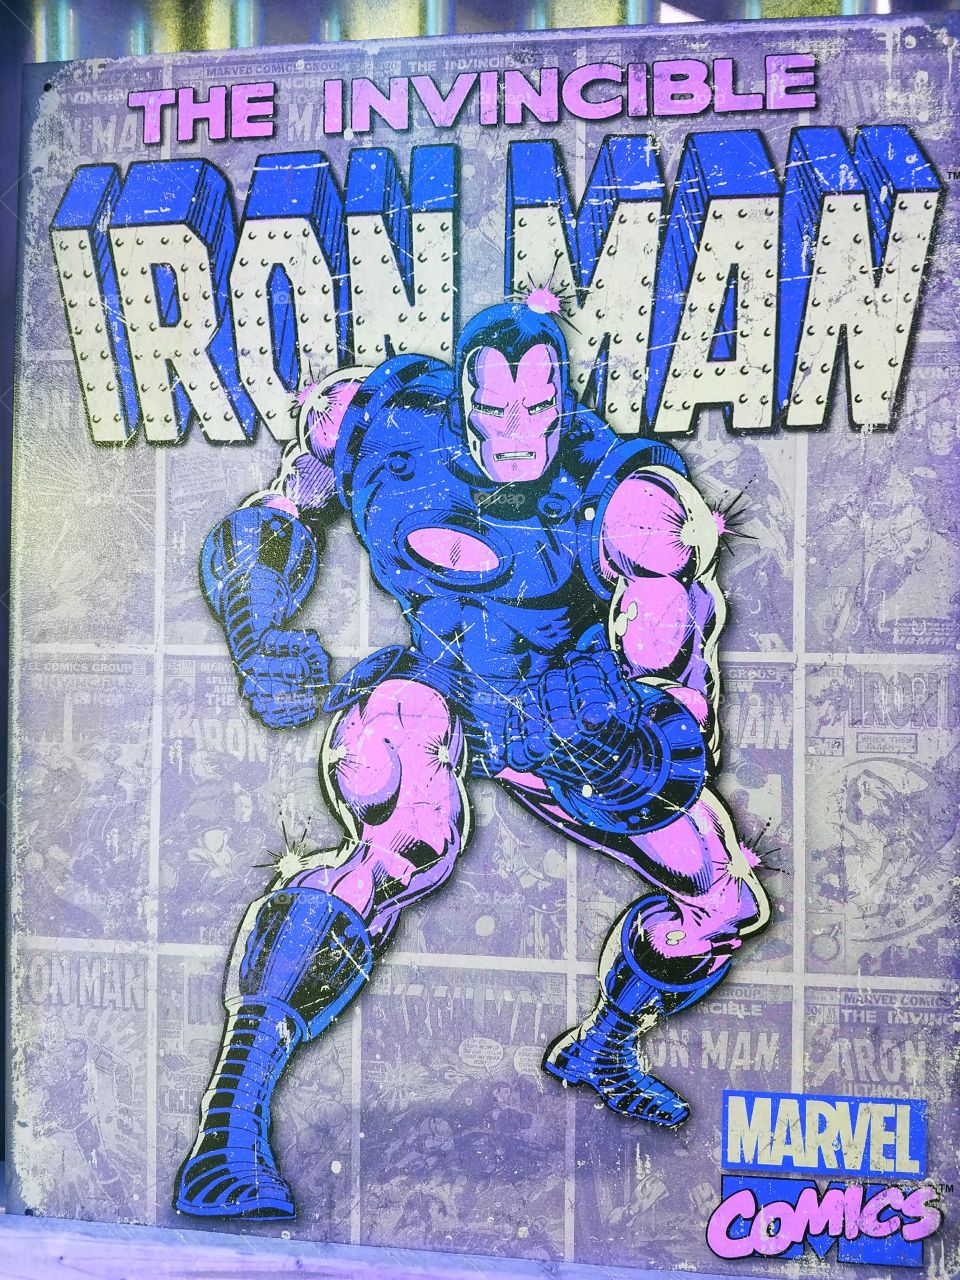 The Invincible Iron Man - Marvel Comics. Purple and Blue Poster.